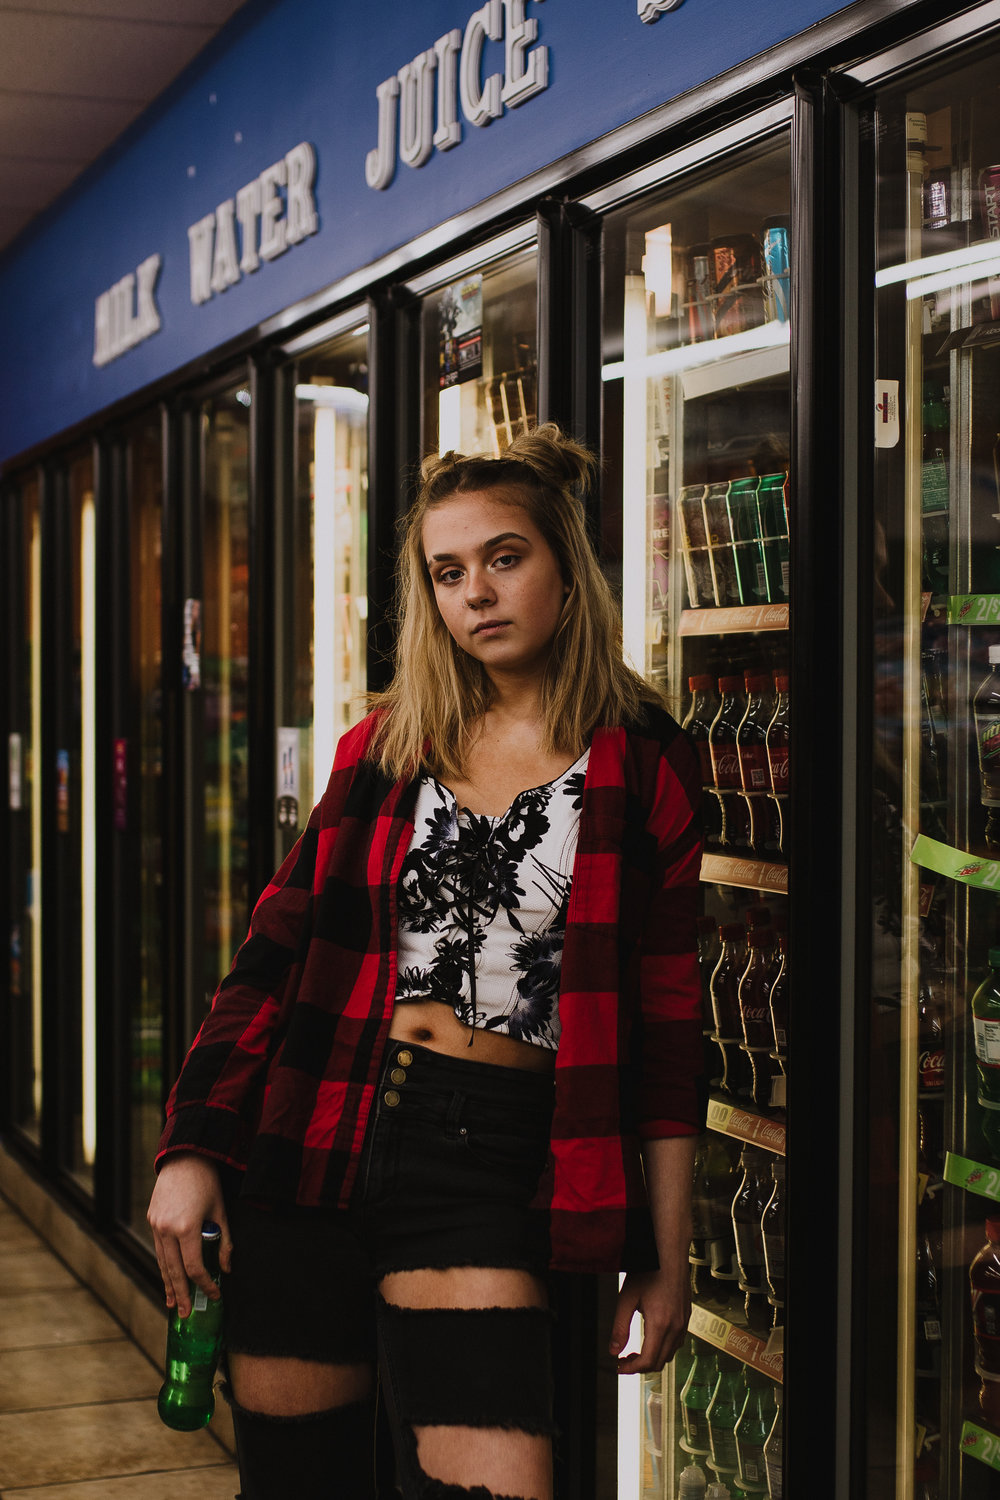 RUTHIE-GASSTATION-MUNCIE-INDIANA-REAGANLYNNPHOTOGRAPHY-3.1.18-20.jpg